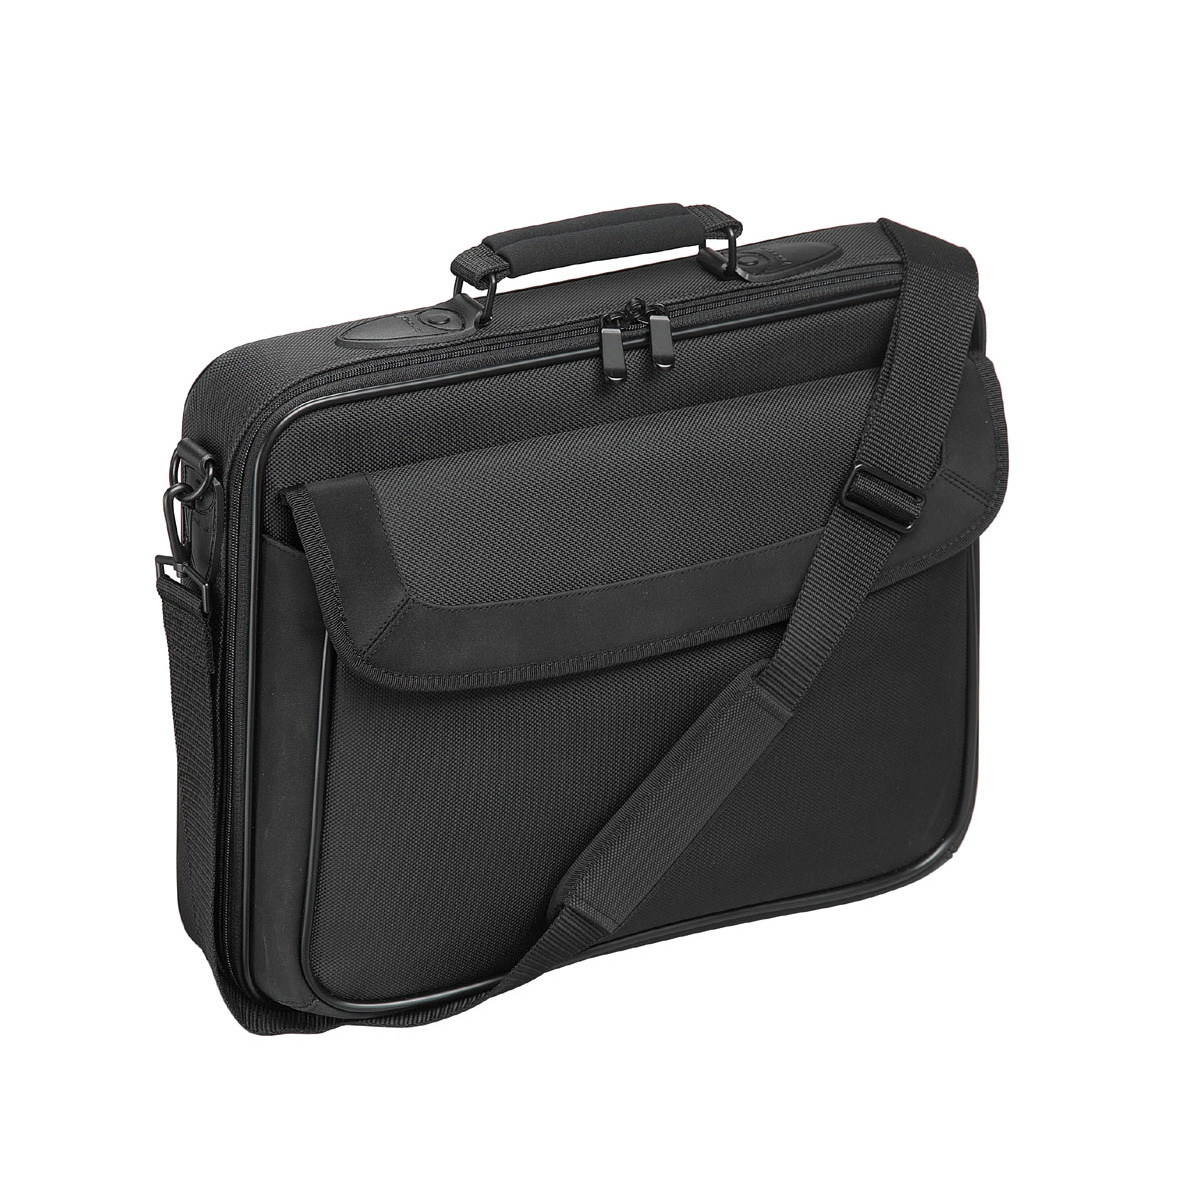 TAR300 Targus Targus Carry Case/Nylon Black Value - C2000